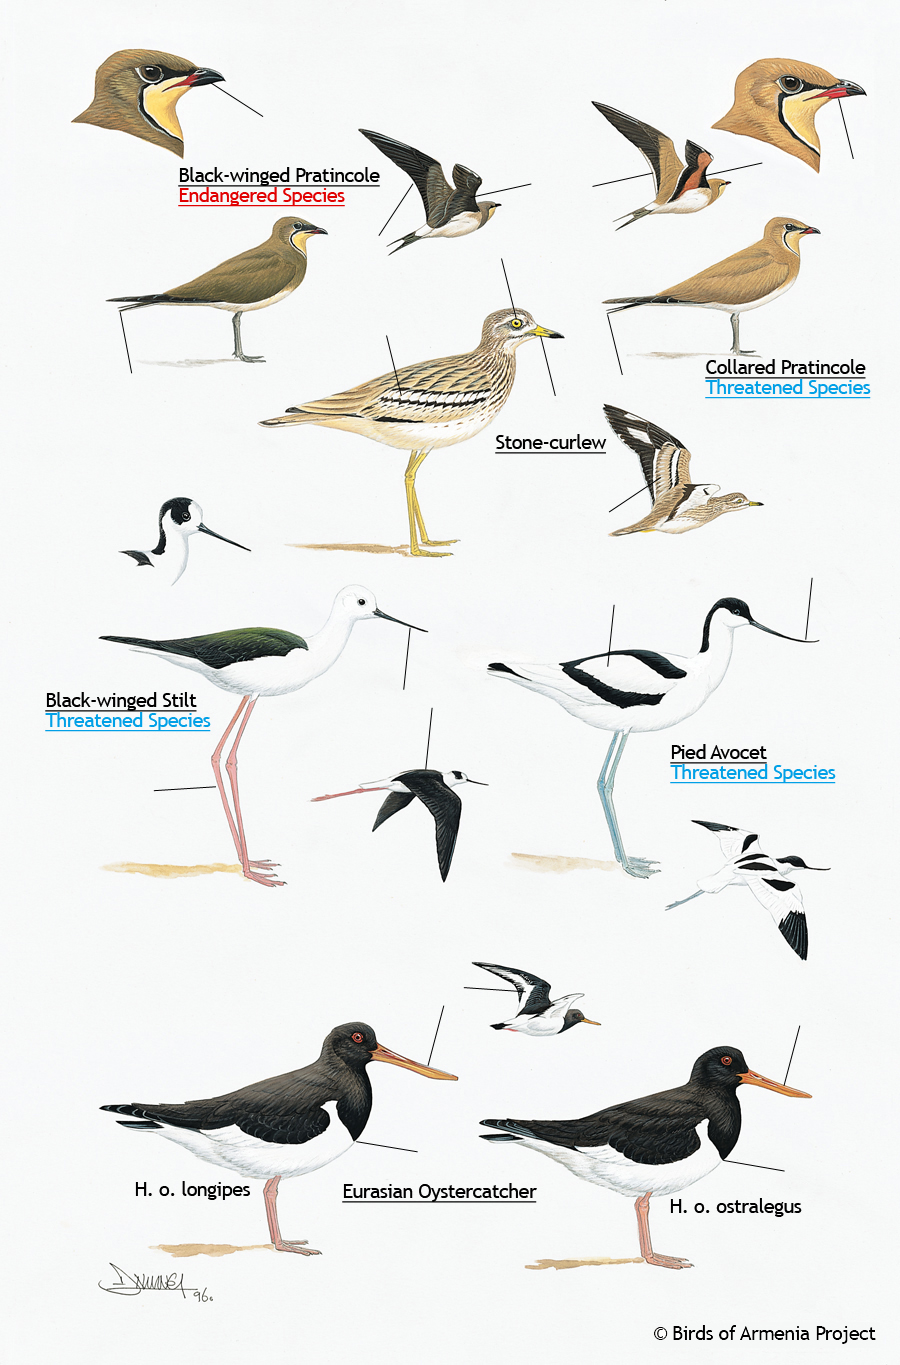 Pratincoles, curlews, avocets, stilts and oystercatchers